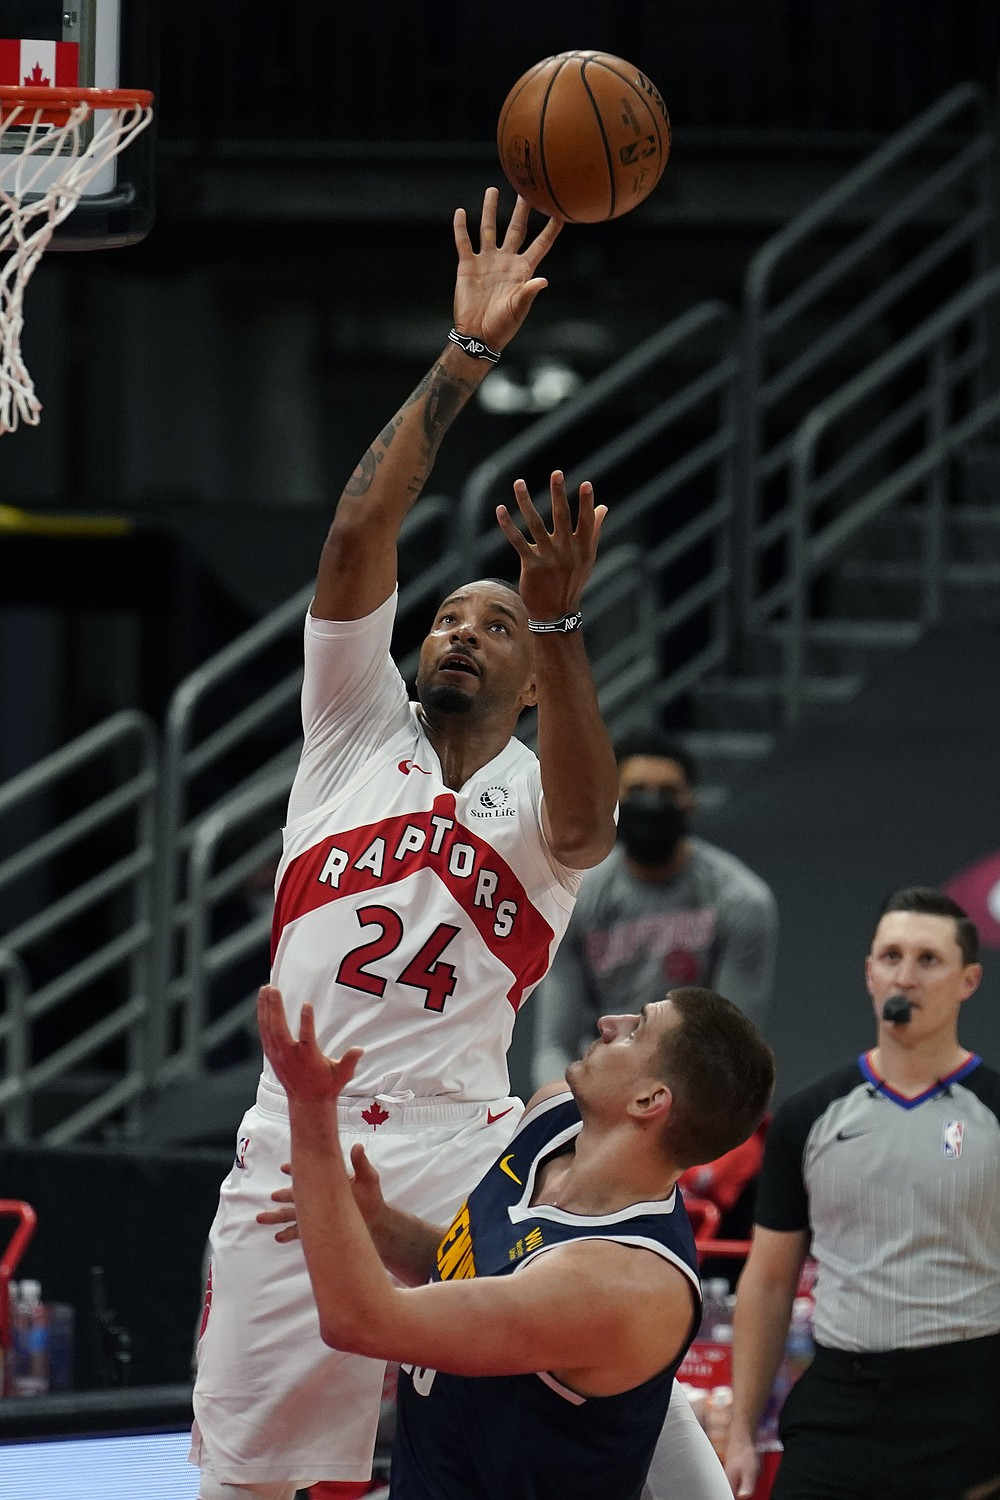 Toronto Raptors forward Norman Powell (24) grabs a rebound over Denver Nuggets center Nikola Jokic (15) during the first half of an NBA basketball game Wednesday, March 24, 2021, in Tampa, Fla. (AP Photo/Chris O'Meara)